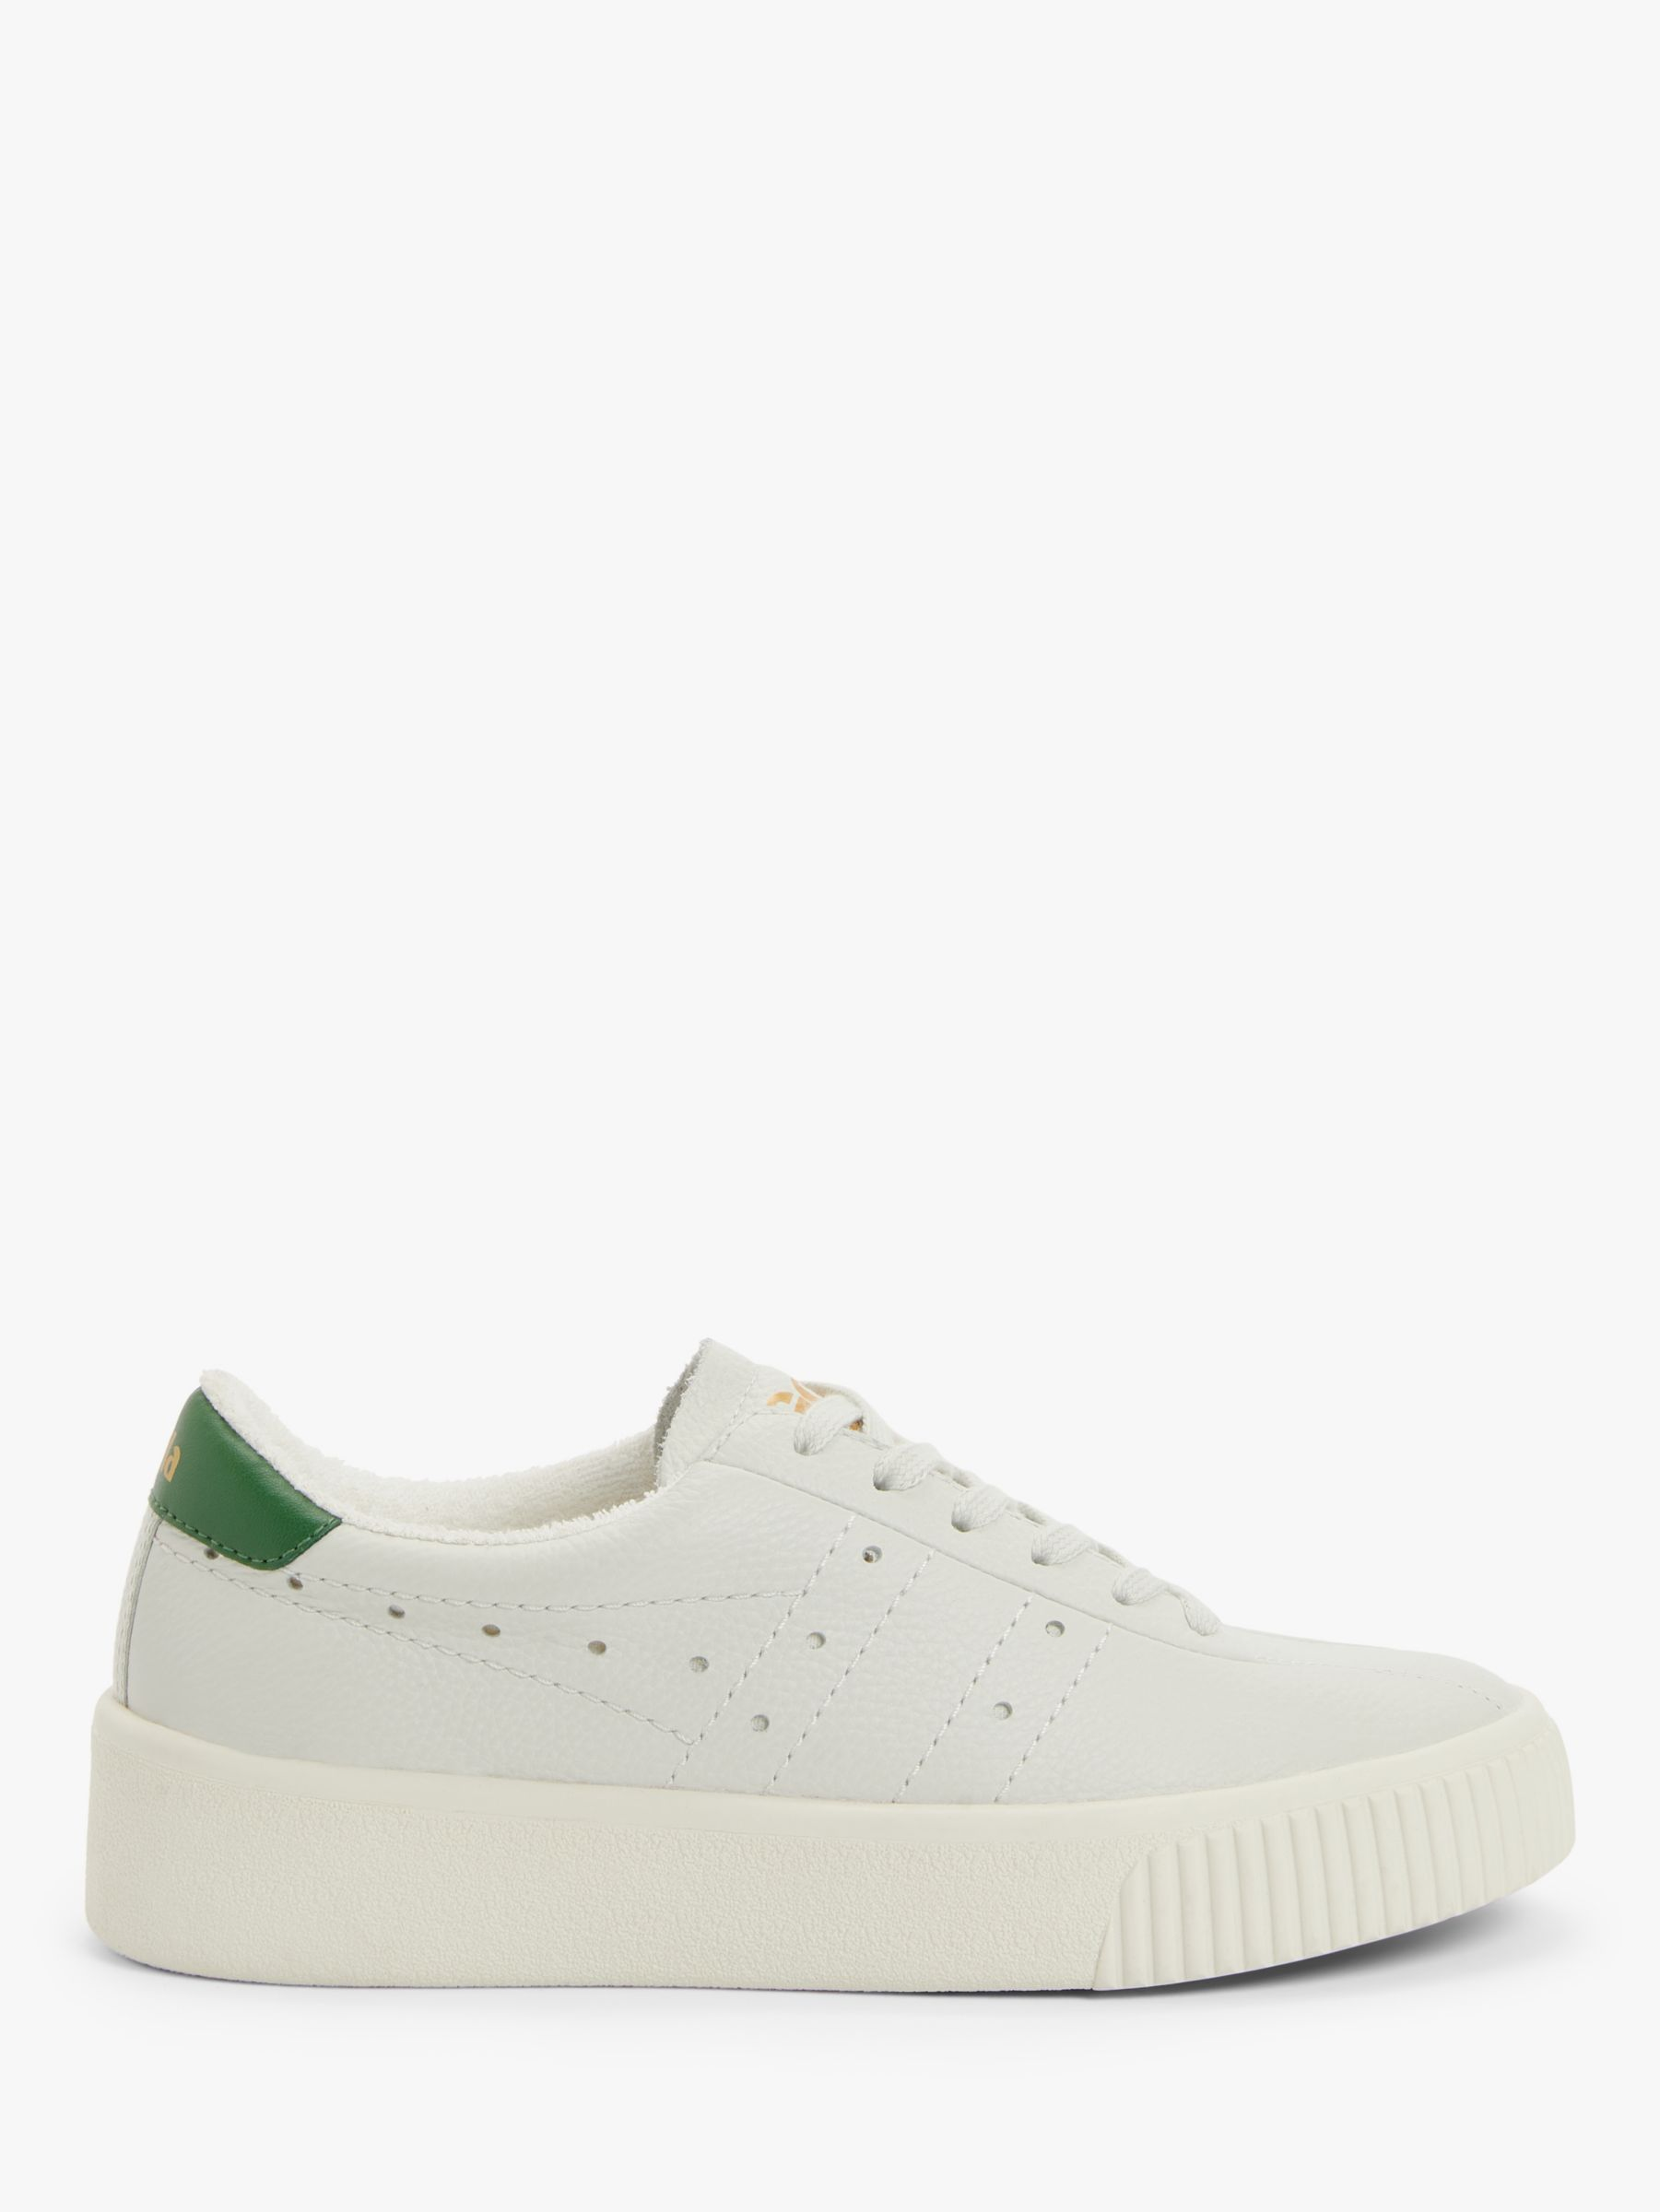 Gola Gola Super Court Leather Trainers, Off White/Green